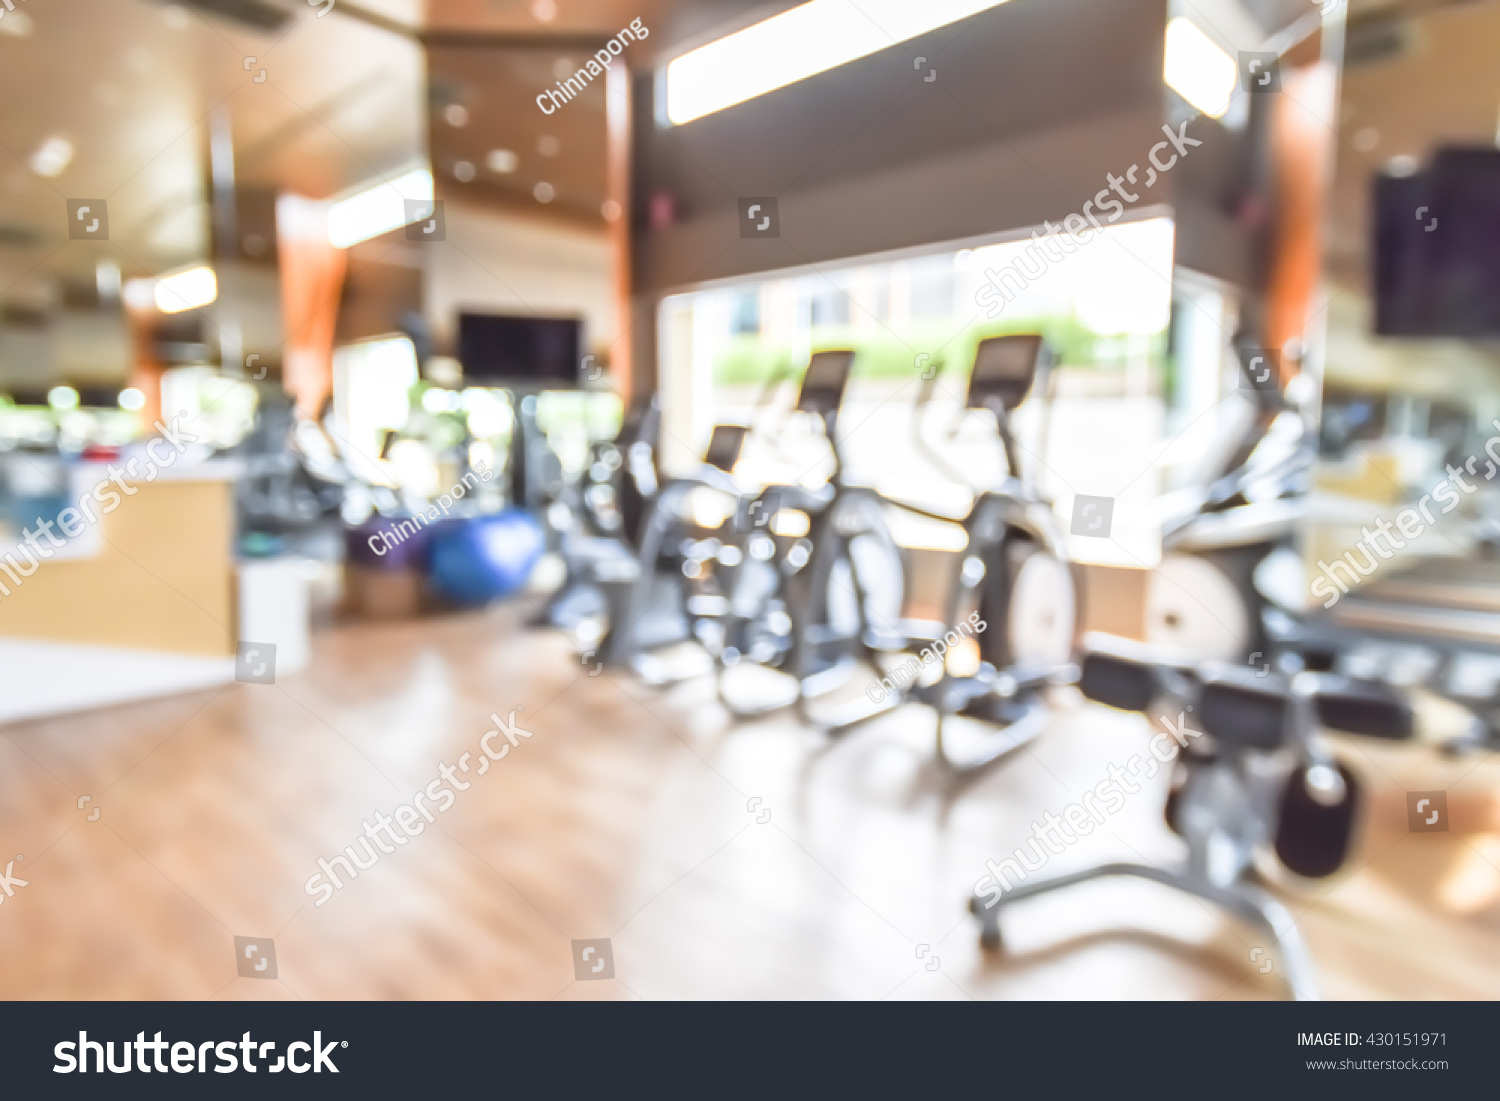 Blur abstract background modern fitness center stock photo